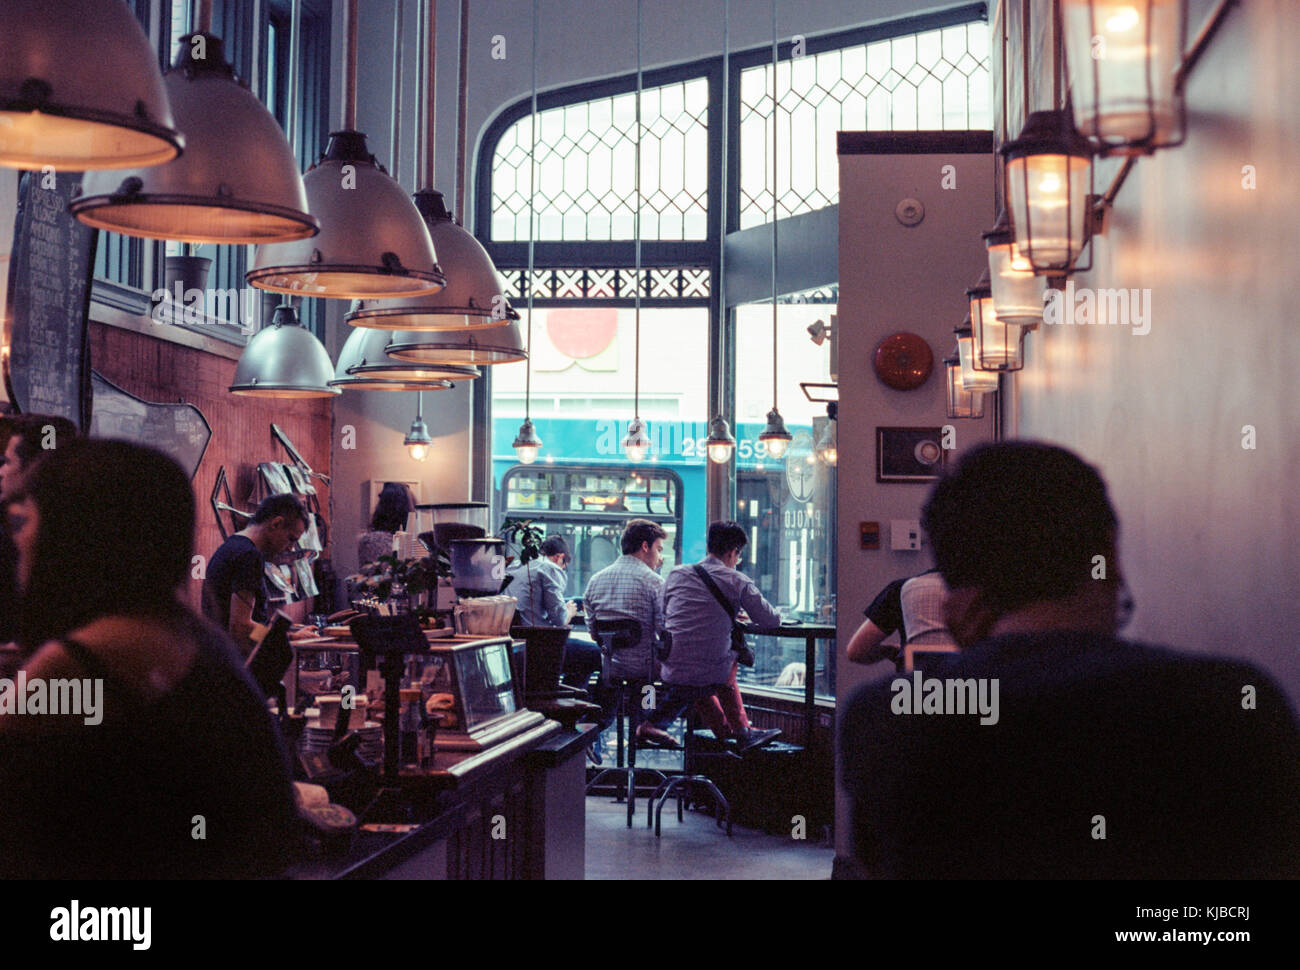 People Enjoying Coffee In A Busy Cafe In Montreal Canada Stock Photo Alamy